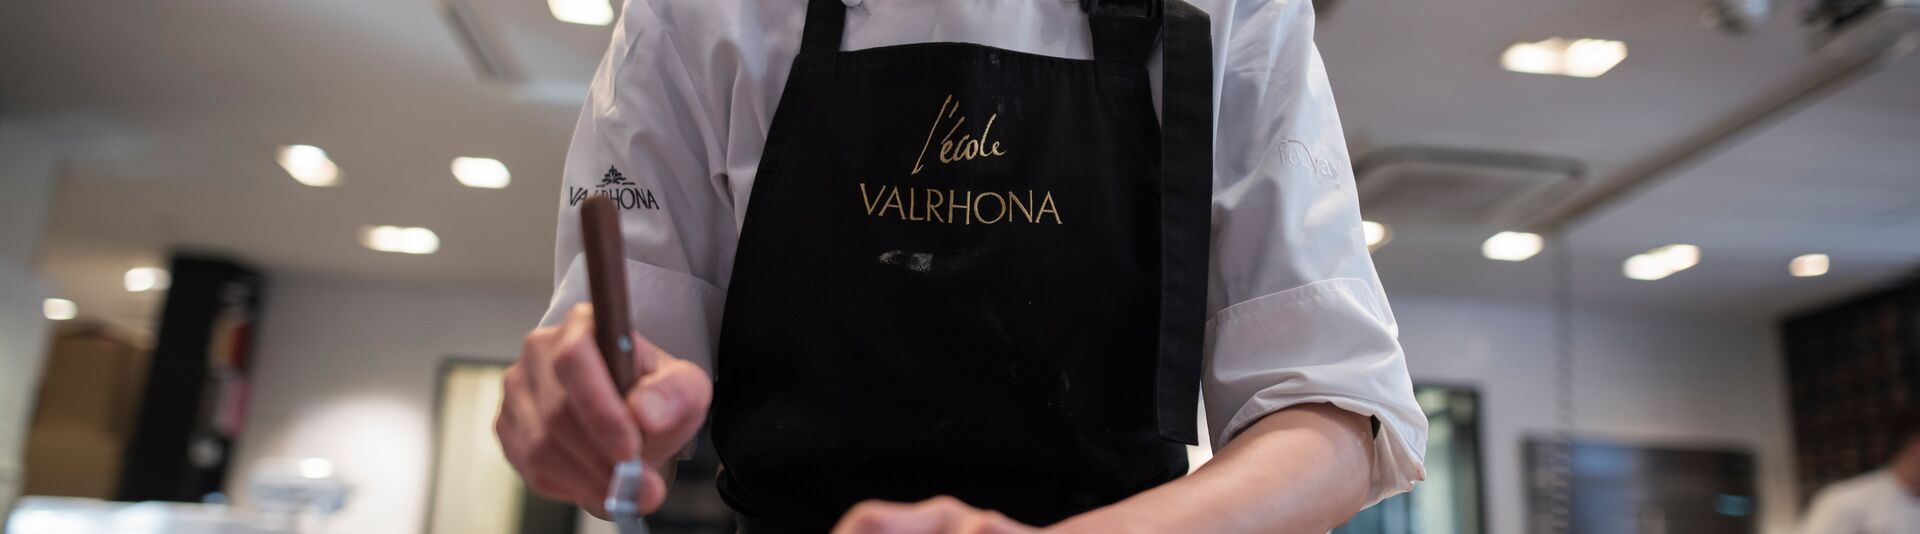 Valrhona.com-live-long-gastronomie-accompanying-customers